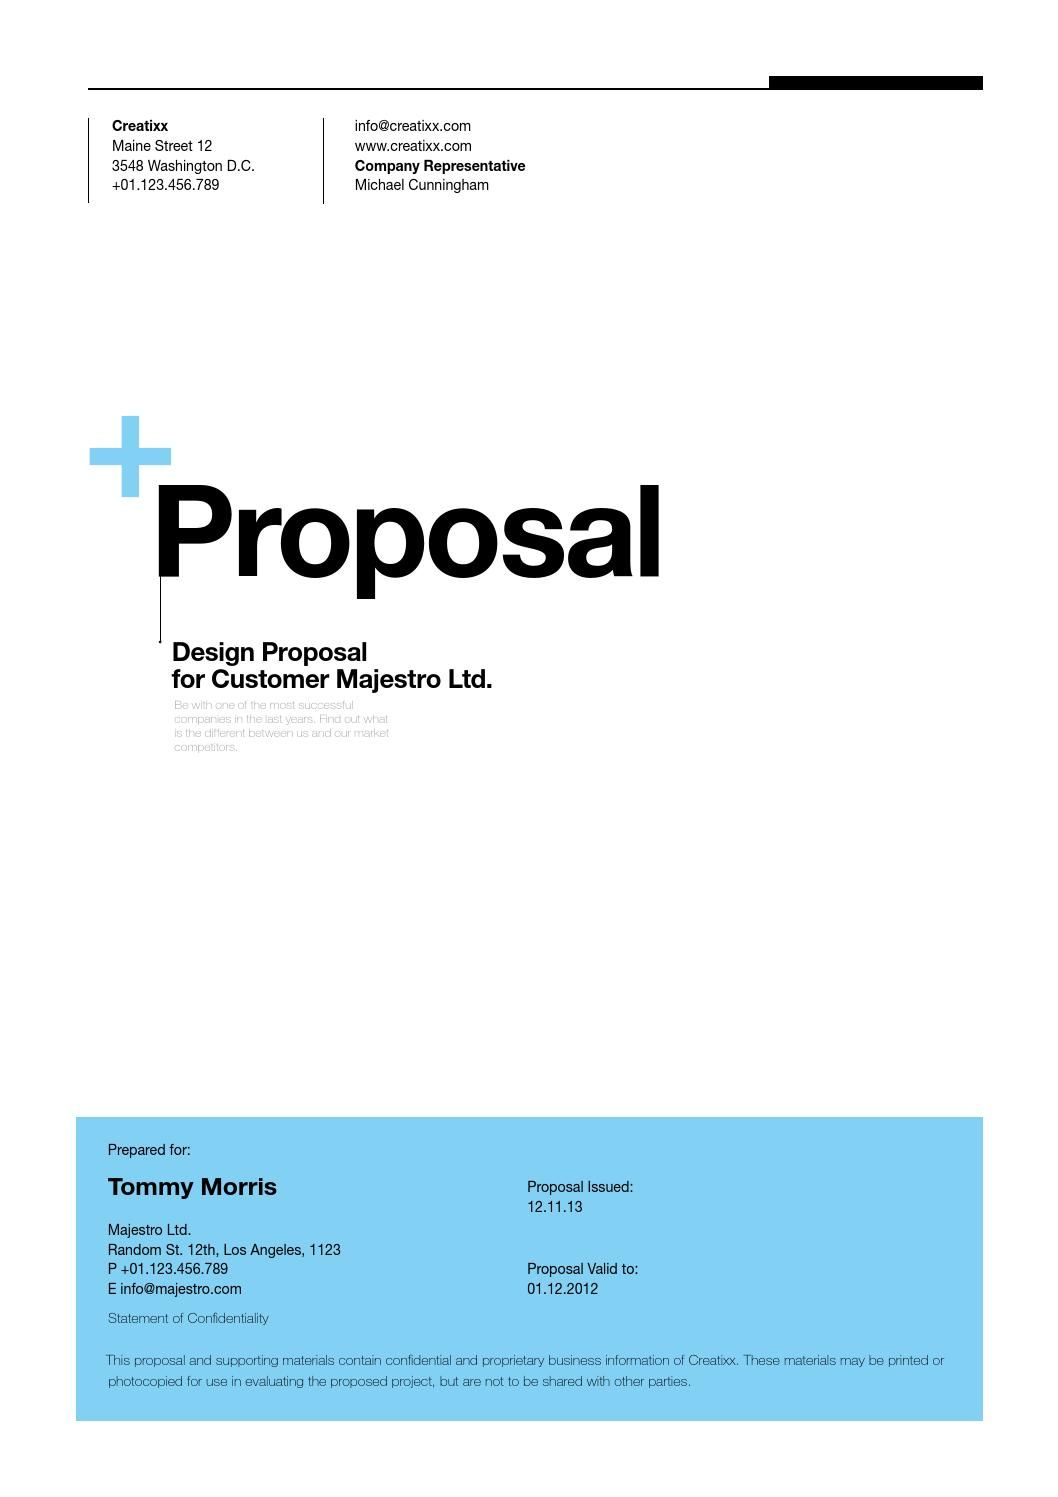 suisse design proposal template words creative and colors suisse design proposal template minimal and professional project proposal template for creative businesses created in